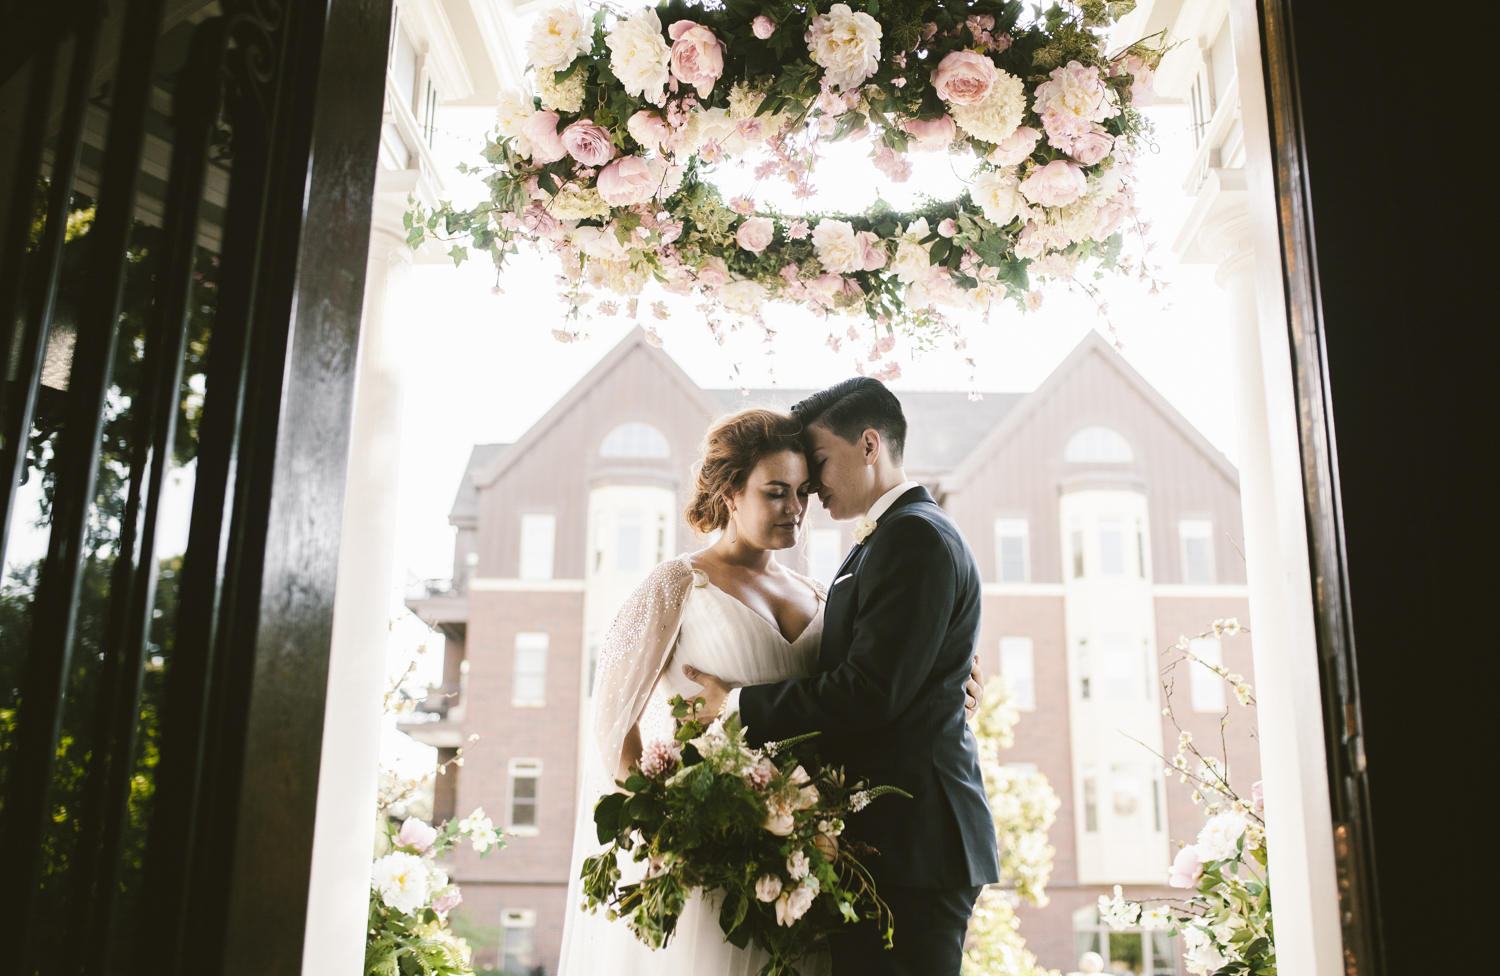 An elegant Historic estate wedding in Minneapolis